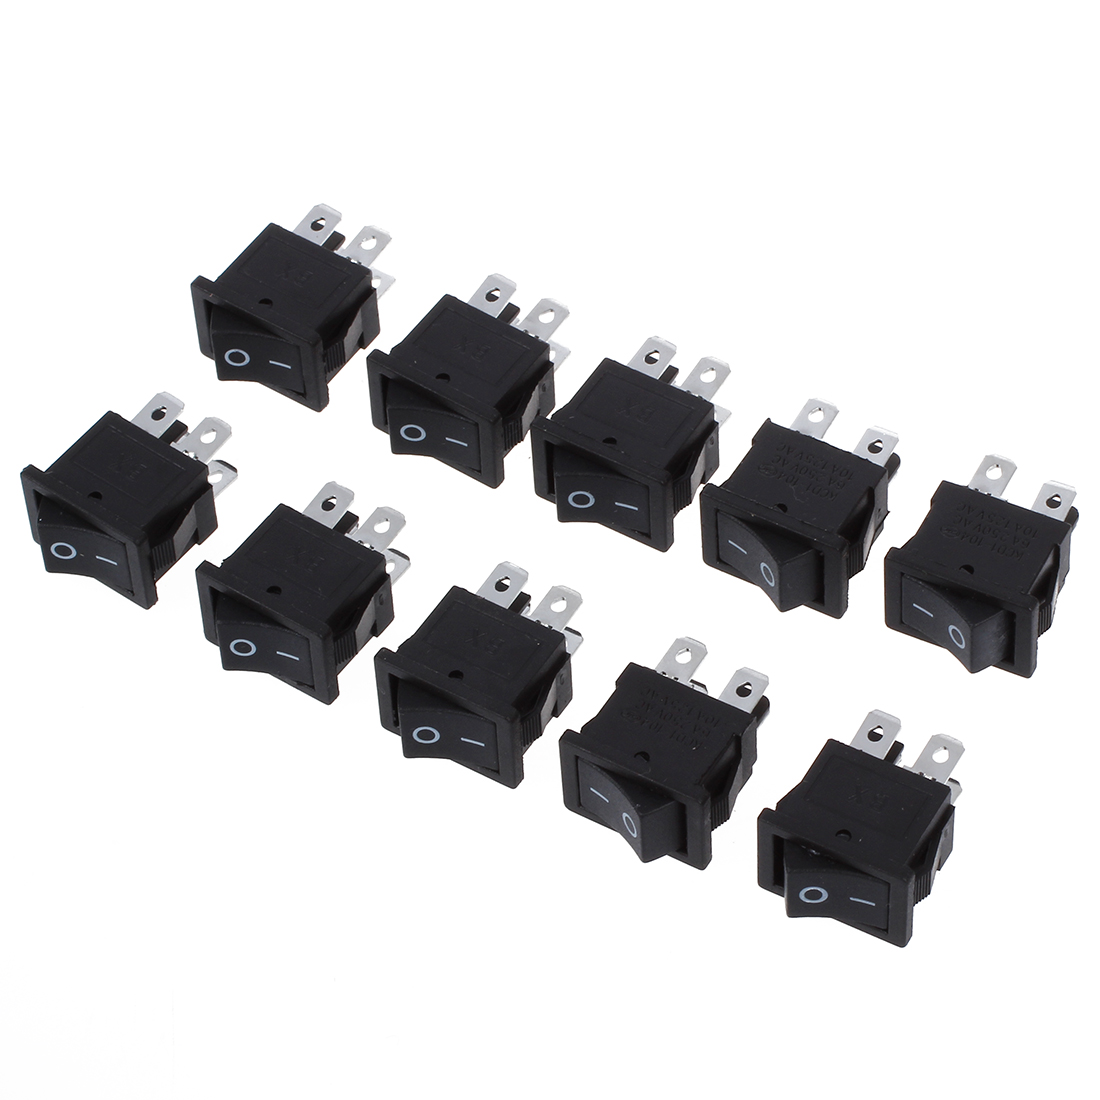 10 Pcs x 4 Pin On-Off 2 Position DPST Boat Rocker Switches 10A/125V 6A/250V AC